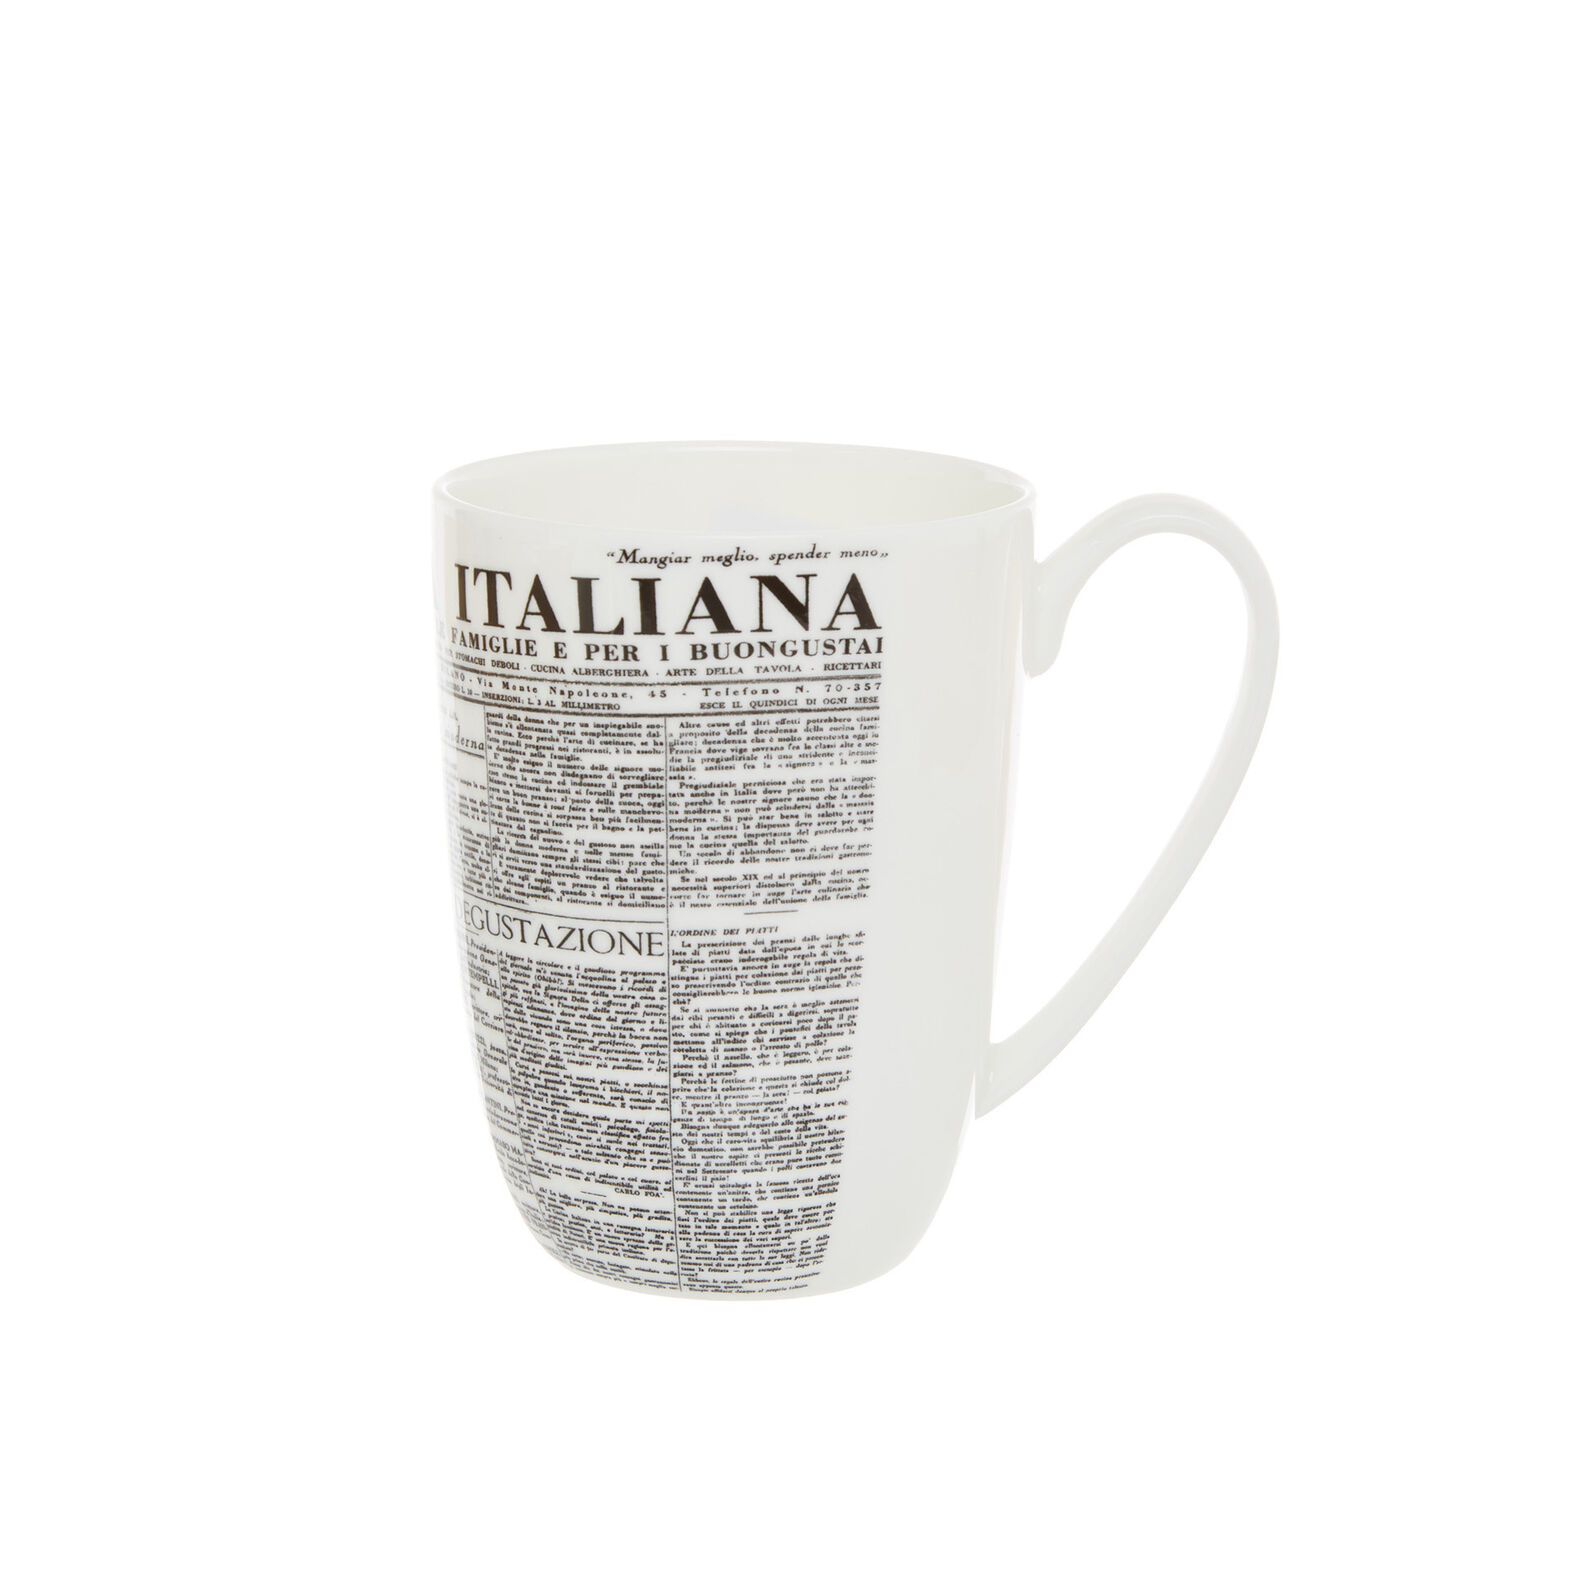 Mug fine bone china decoro geometric La Cucina Italiana